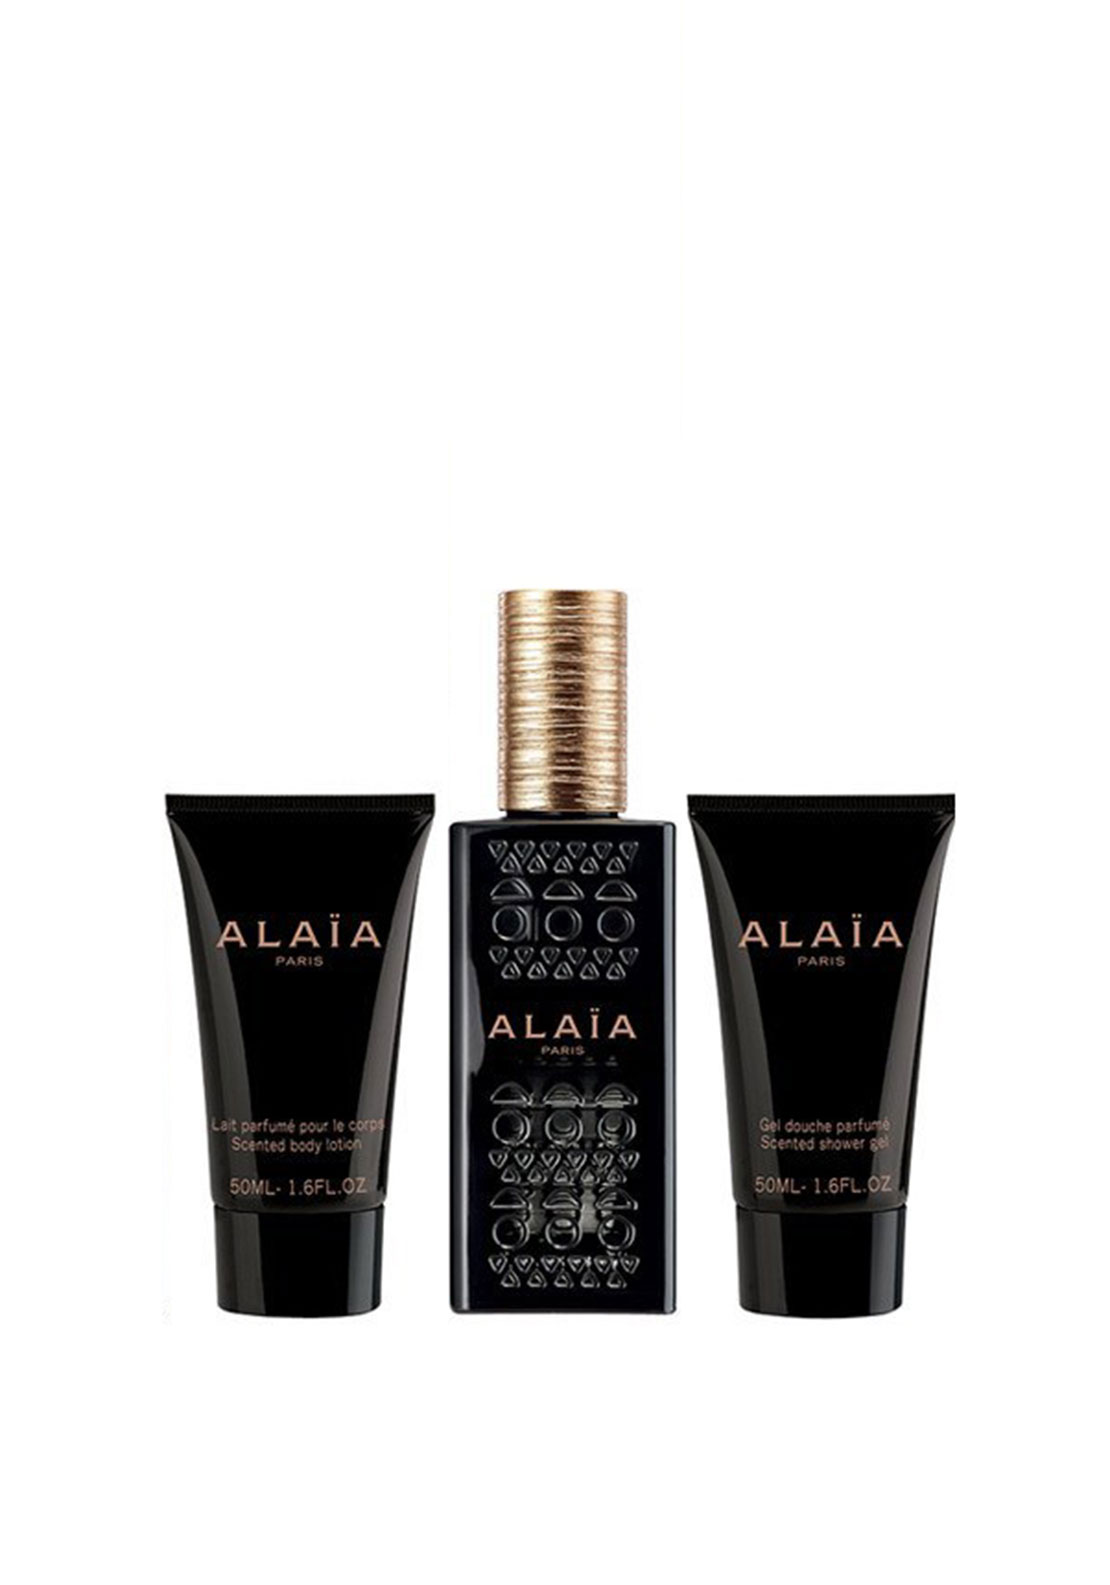 Alaia Paris Eau De Parfum Gift Set For Her